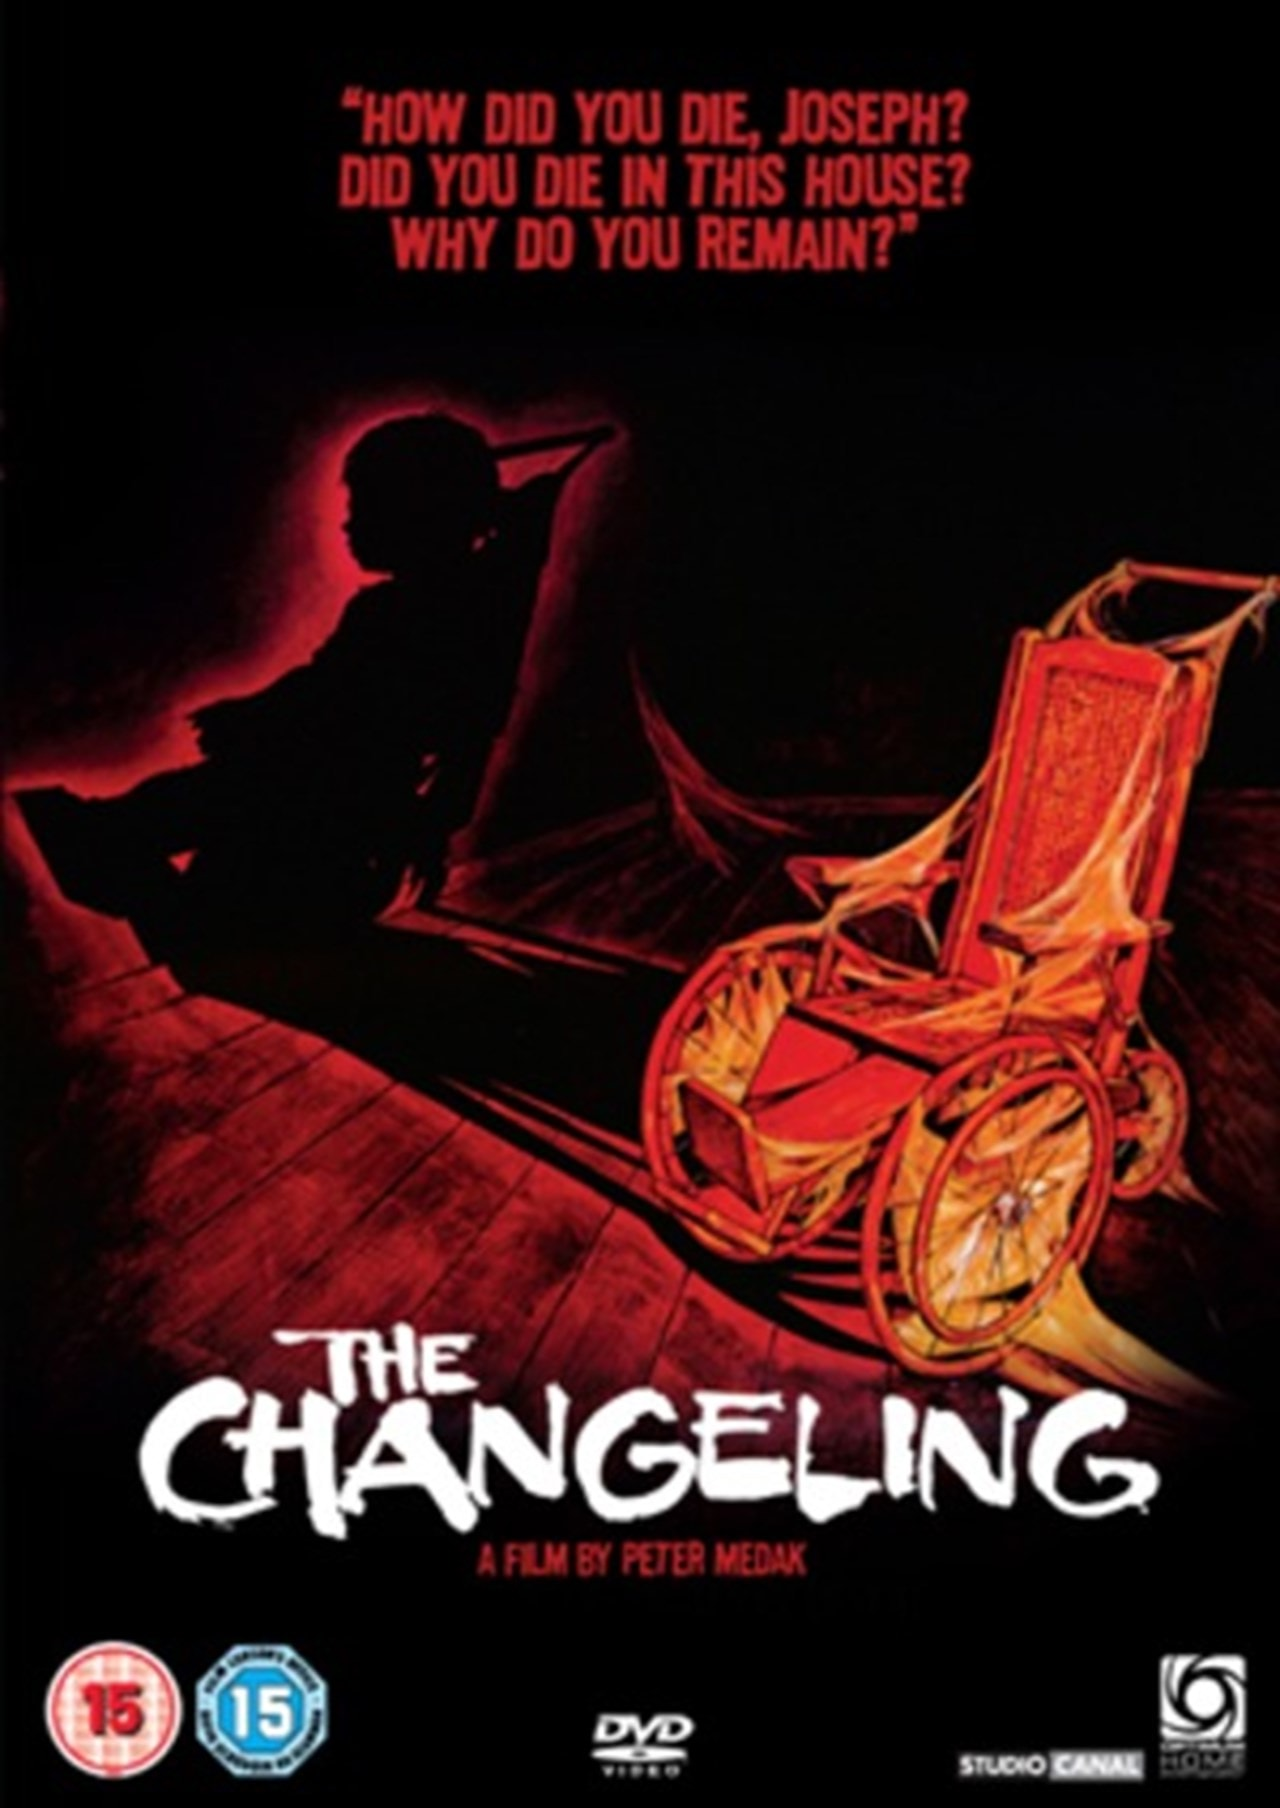 The Changeling - 1